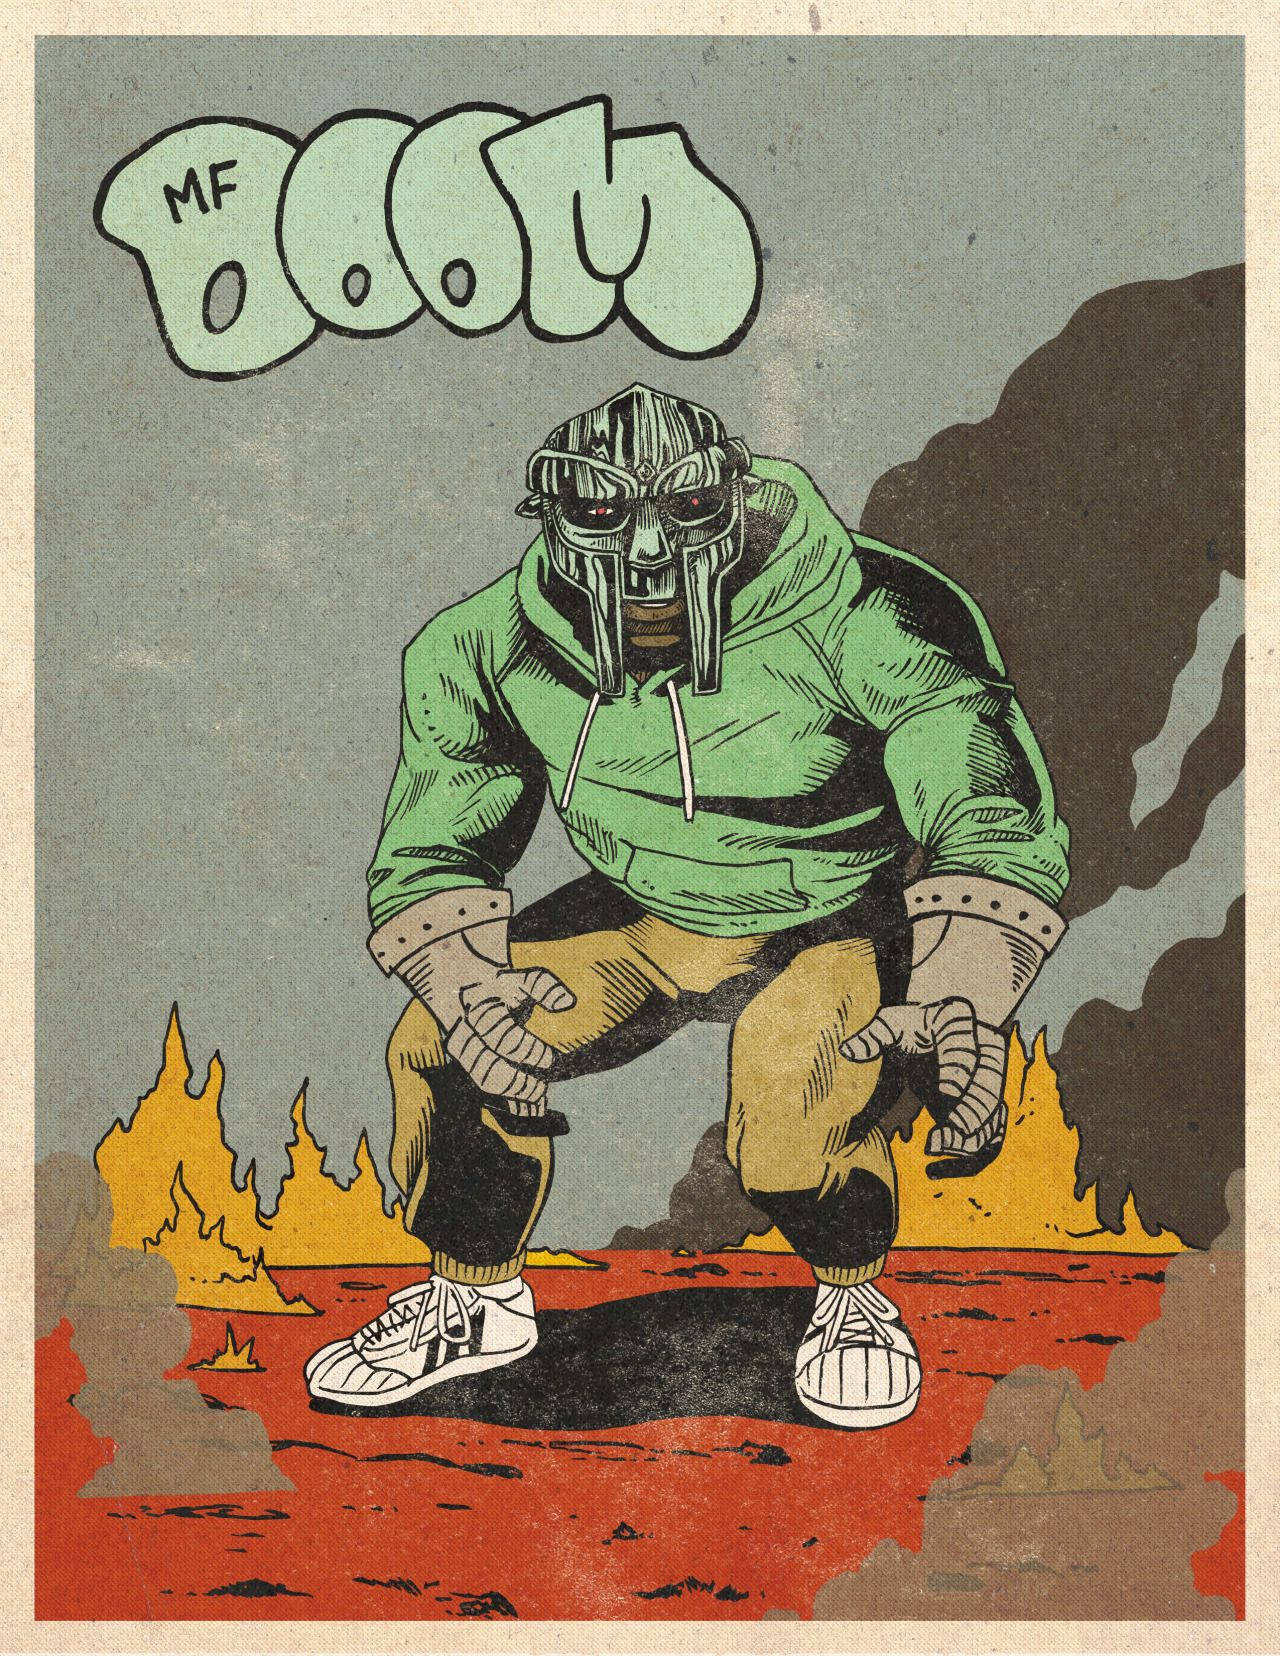 Mf DooM hip hop Vintage Retro trippy PSYCHEDELIC art POSTER No Frame